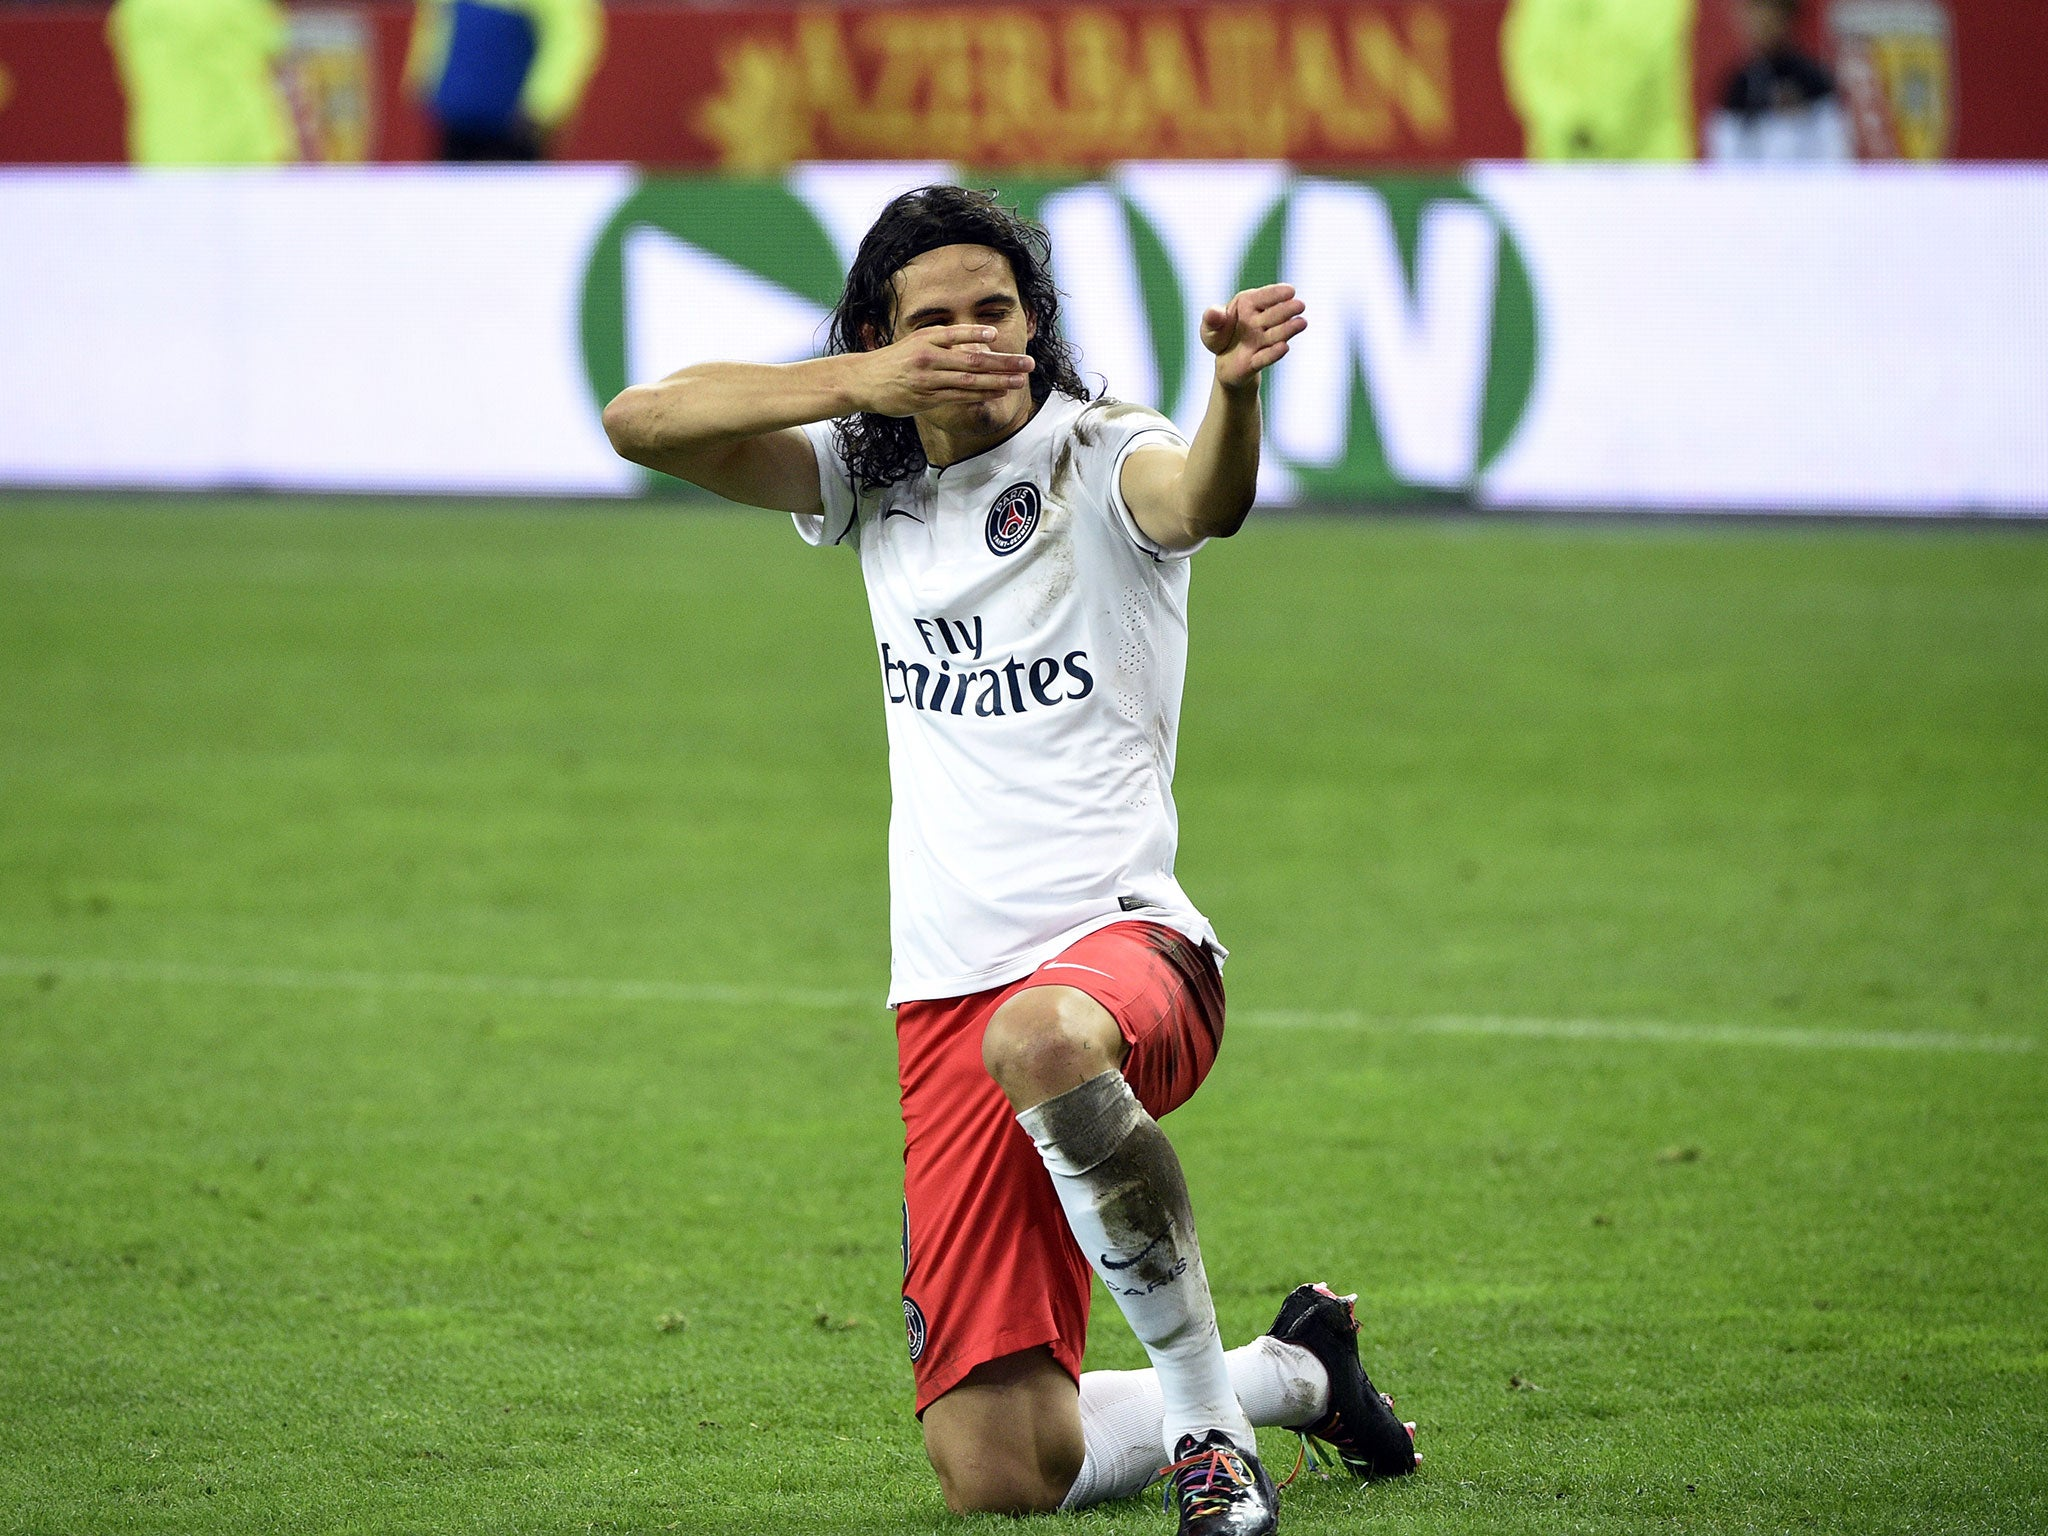 Edinson Cavani Sent Off After Celebrating Penalty With Gun Gesture In Psg S Bad Tempered Victory Over Nine Man Rc Lens The Independent The Independent